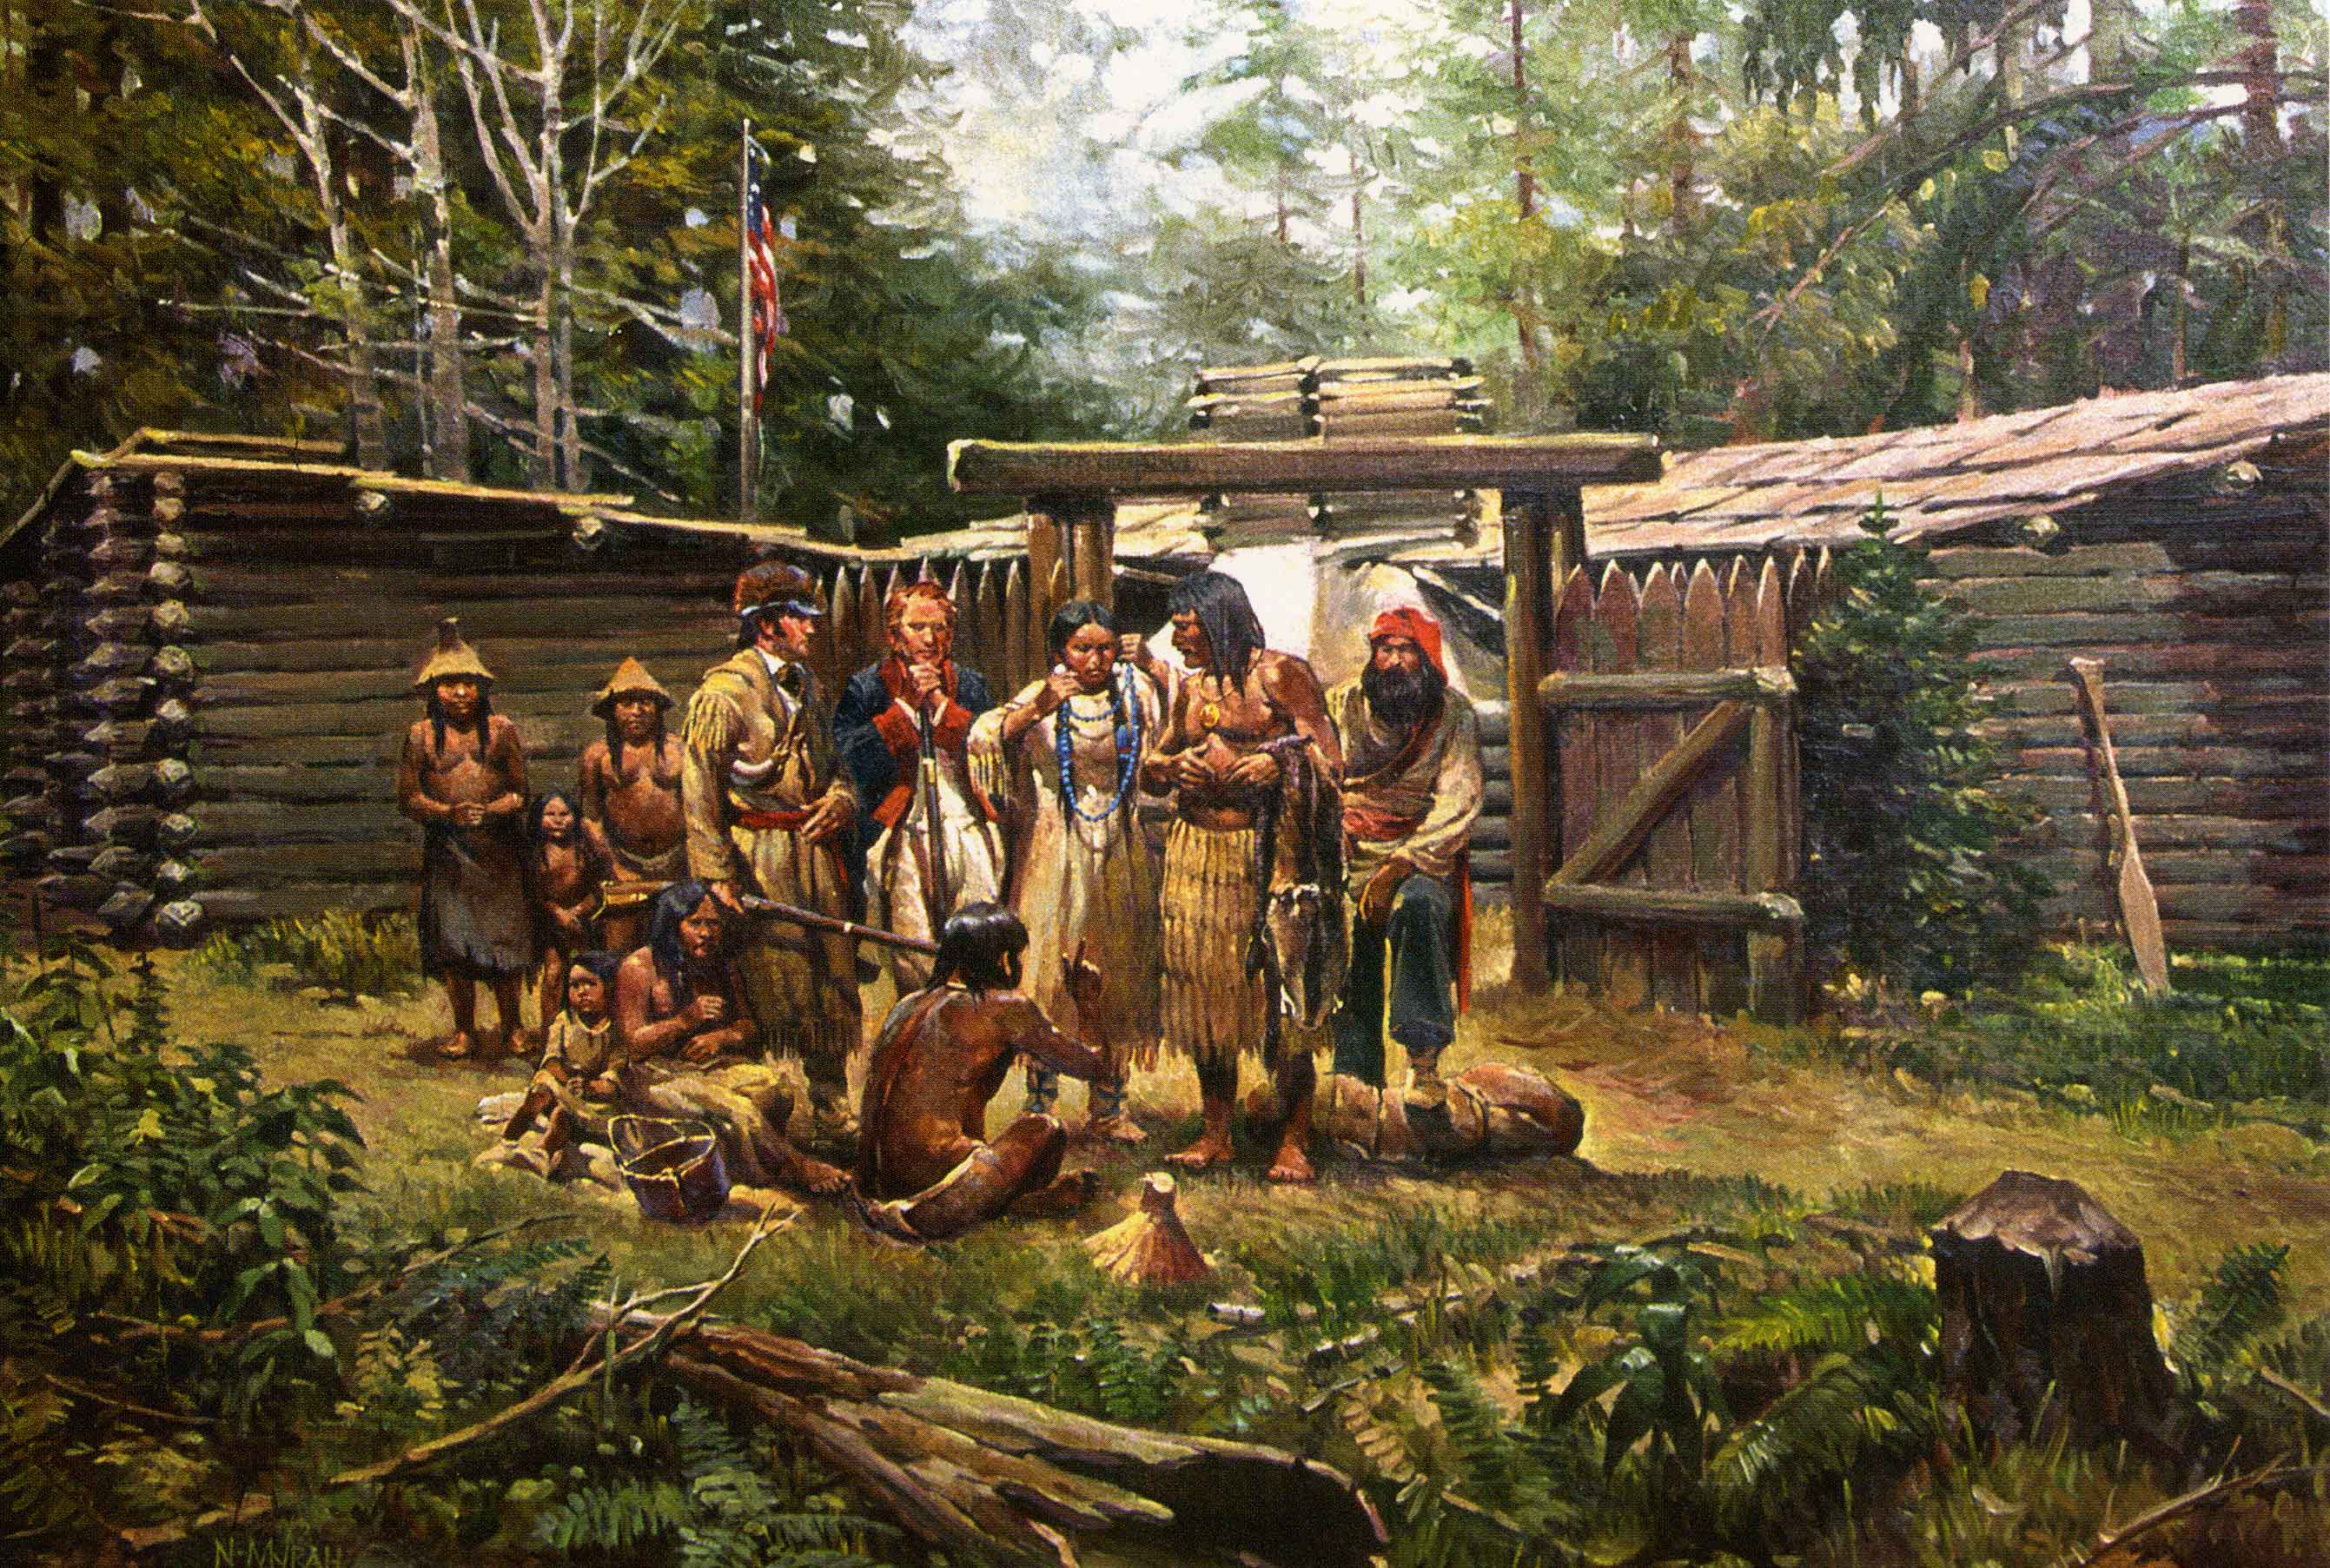 lewis and clark indian relations York of the corps of discovery meriwether lewis and william clark assembled a diverse along with william clark (middle) and an unnamed american indian.